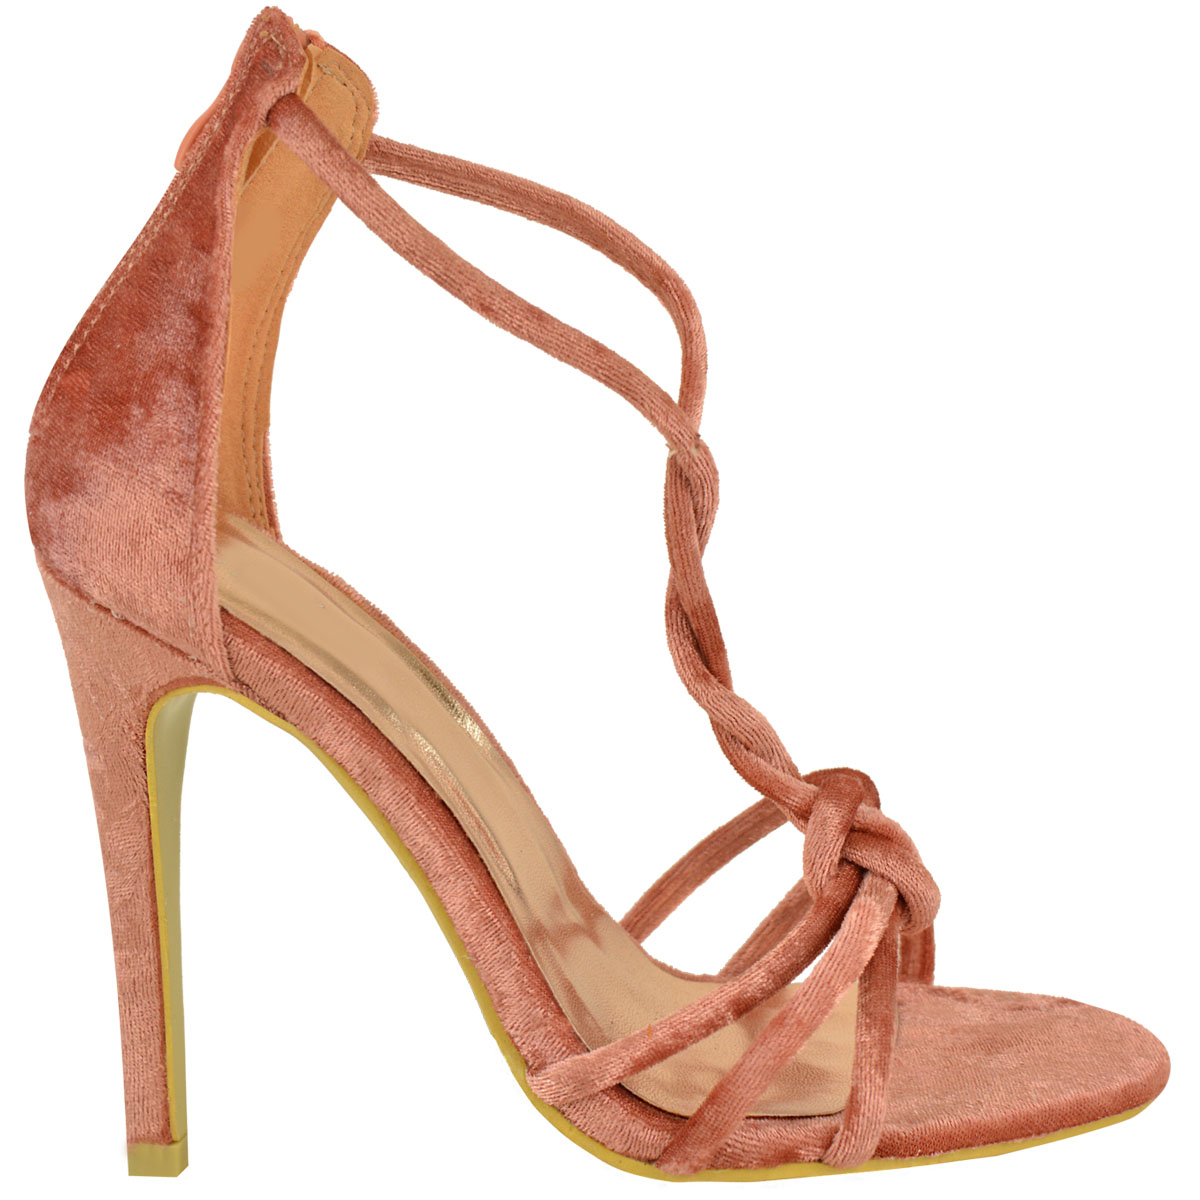 High Heels Deals - discount price on over styles in High Heels for Women! Plus, enjoy FREE SHIPPING & Exchanges!